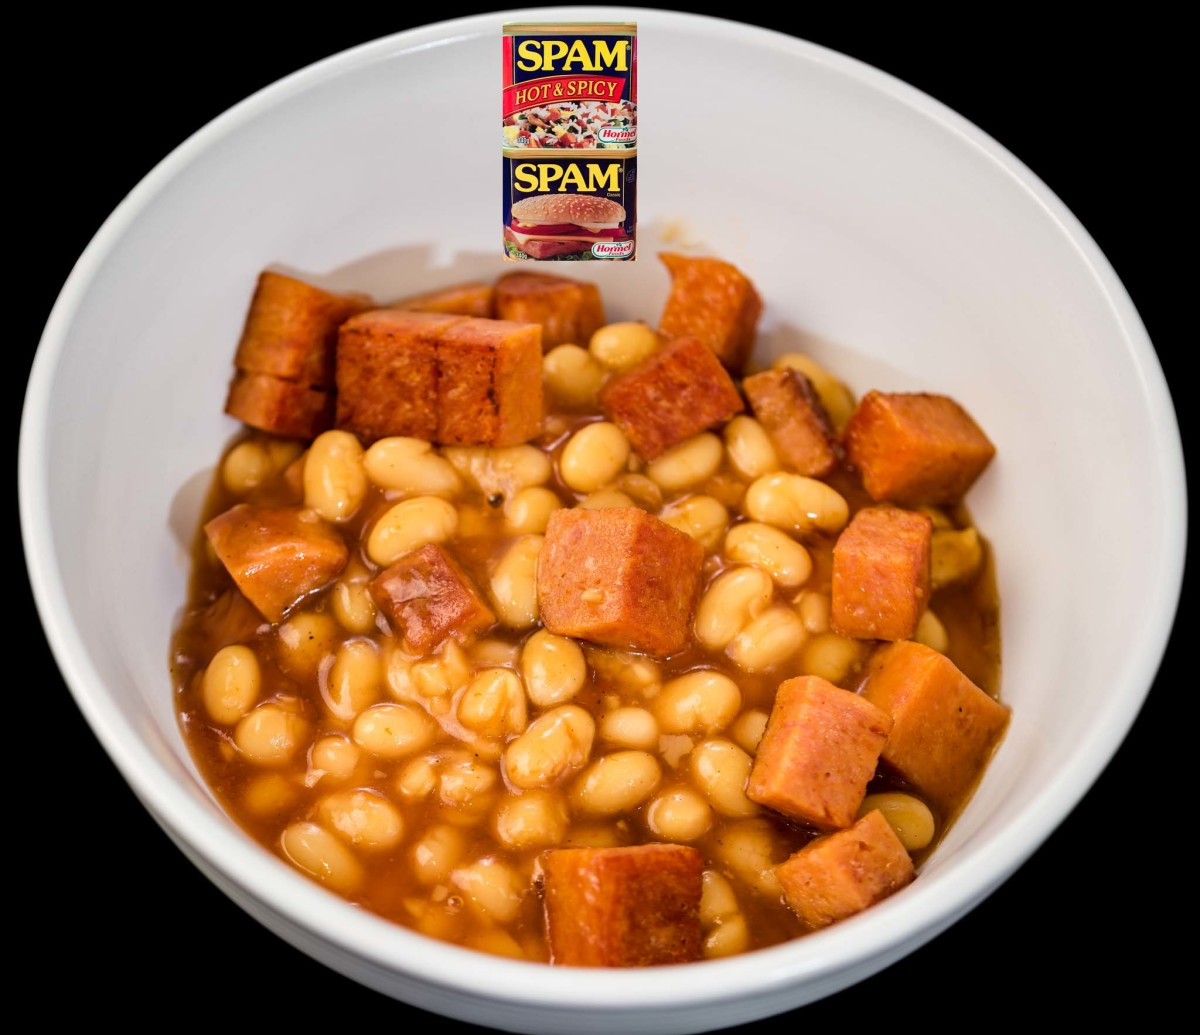 Baked beans, Worcestershire sauce, and hot and spicy spam